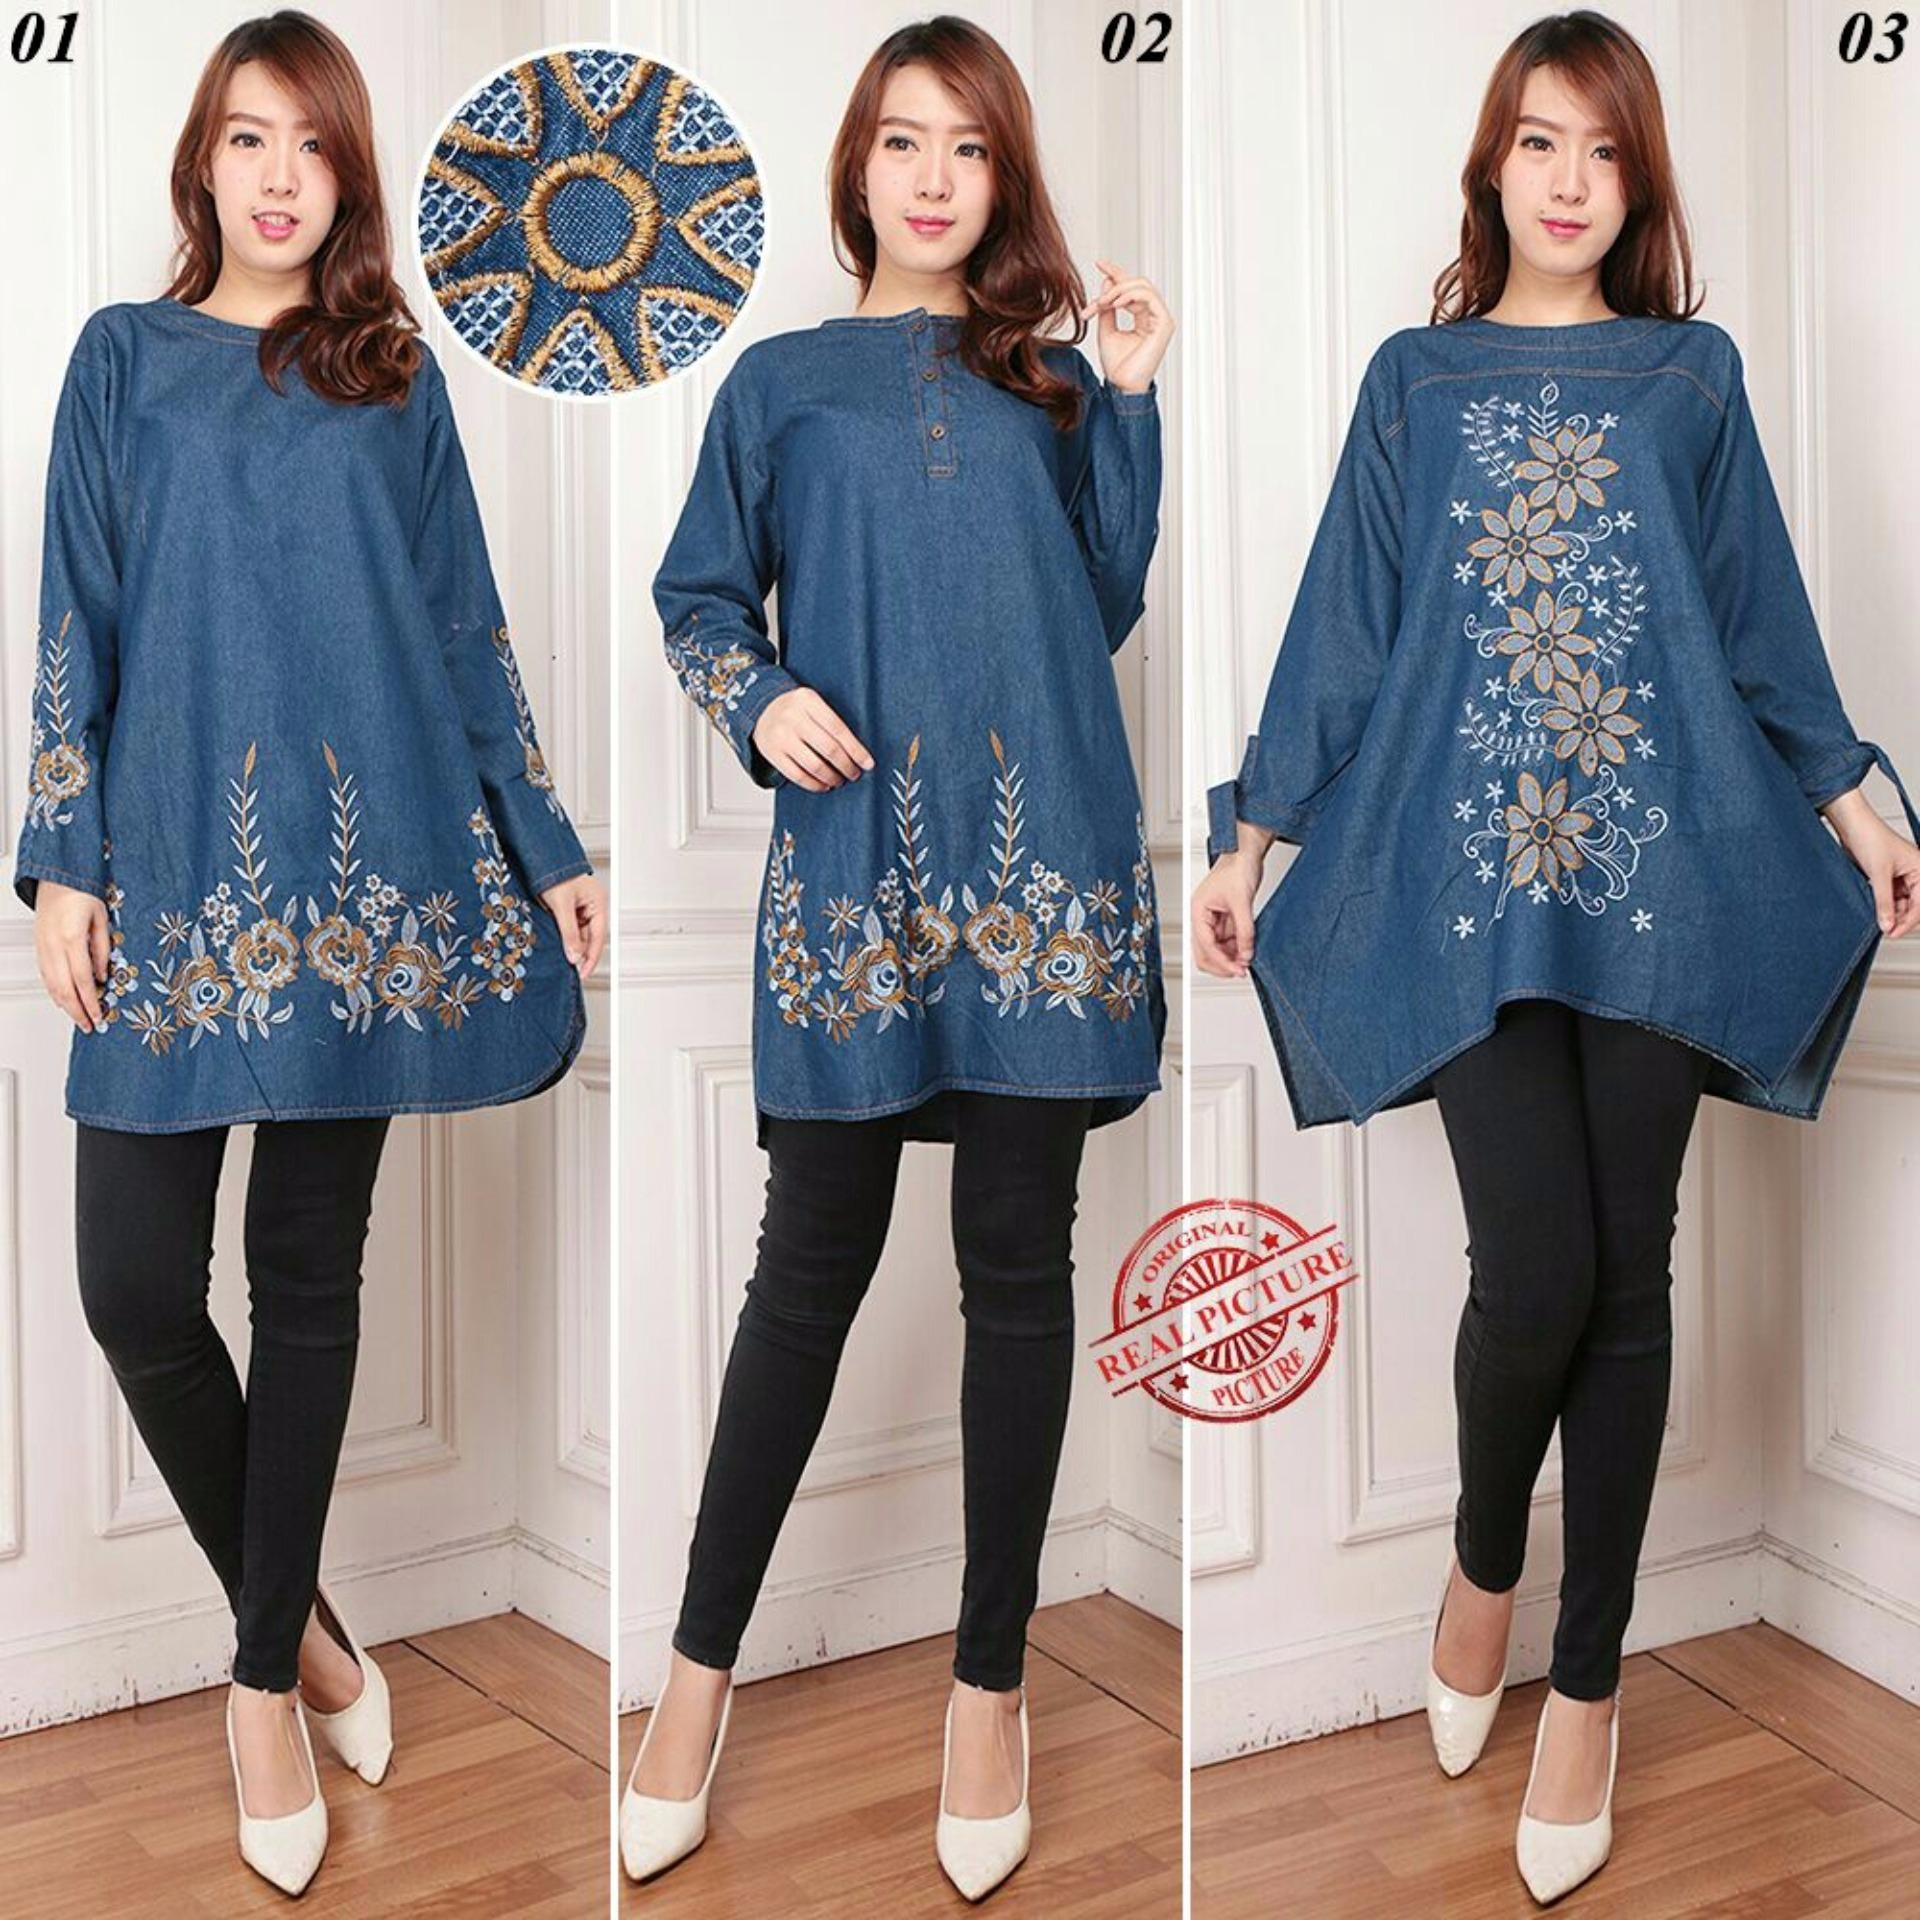 Review Toko Cj Collection Atasan Blouse Kemeja Tunik Wanita Jumbo Long Tunik Shirt Trinisa 01 Online